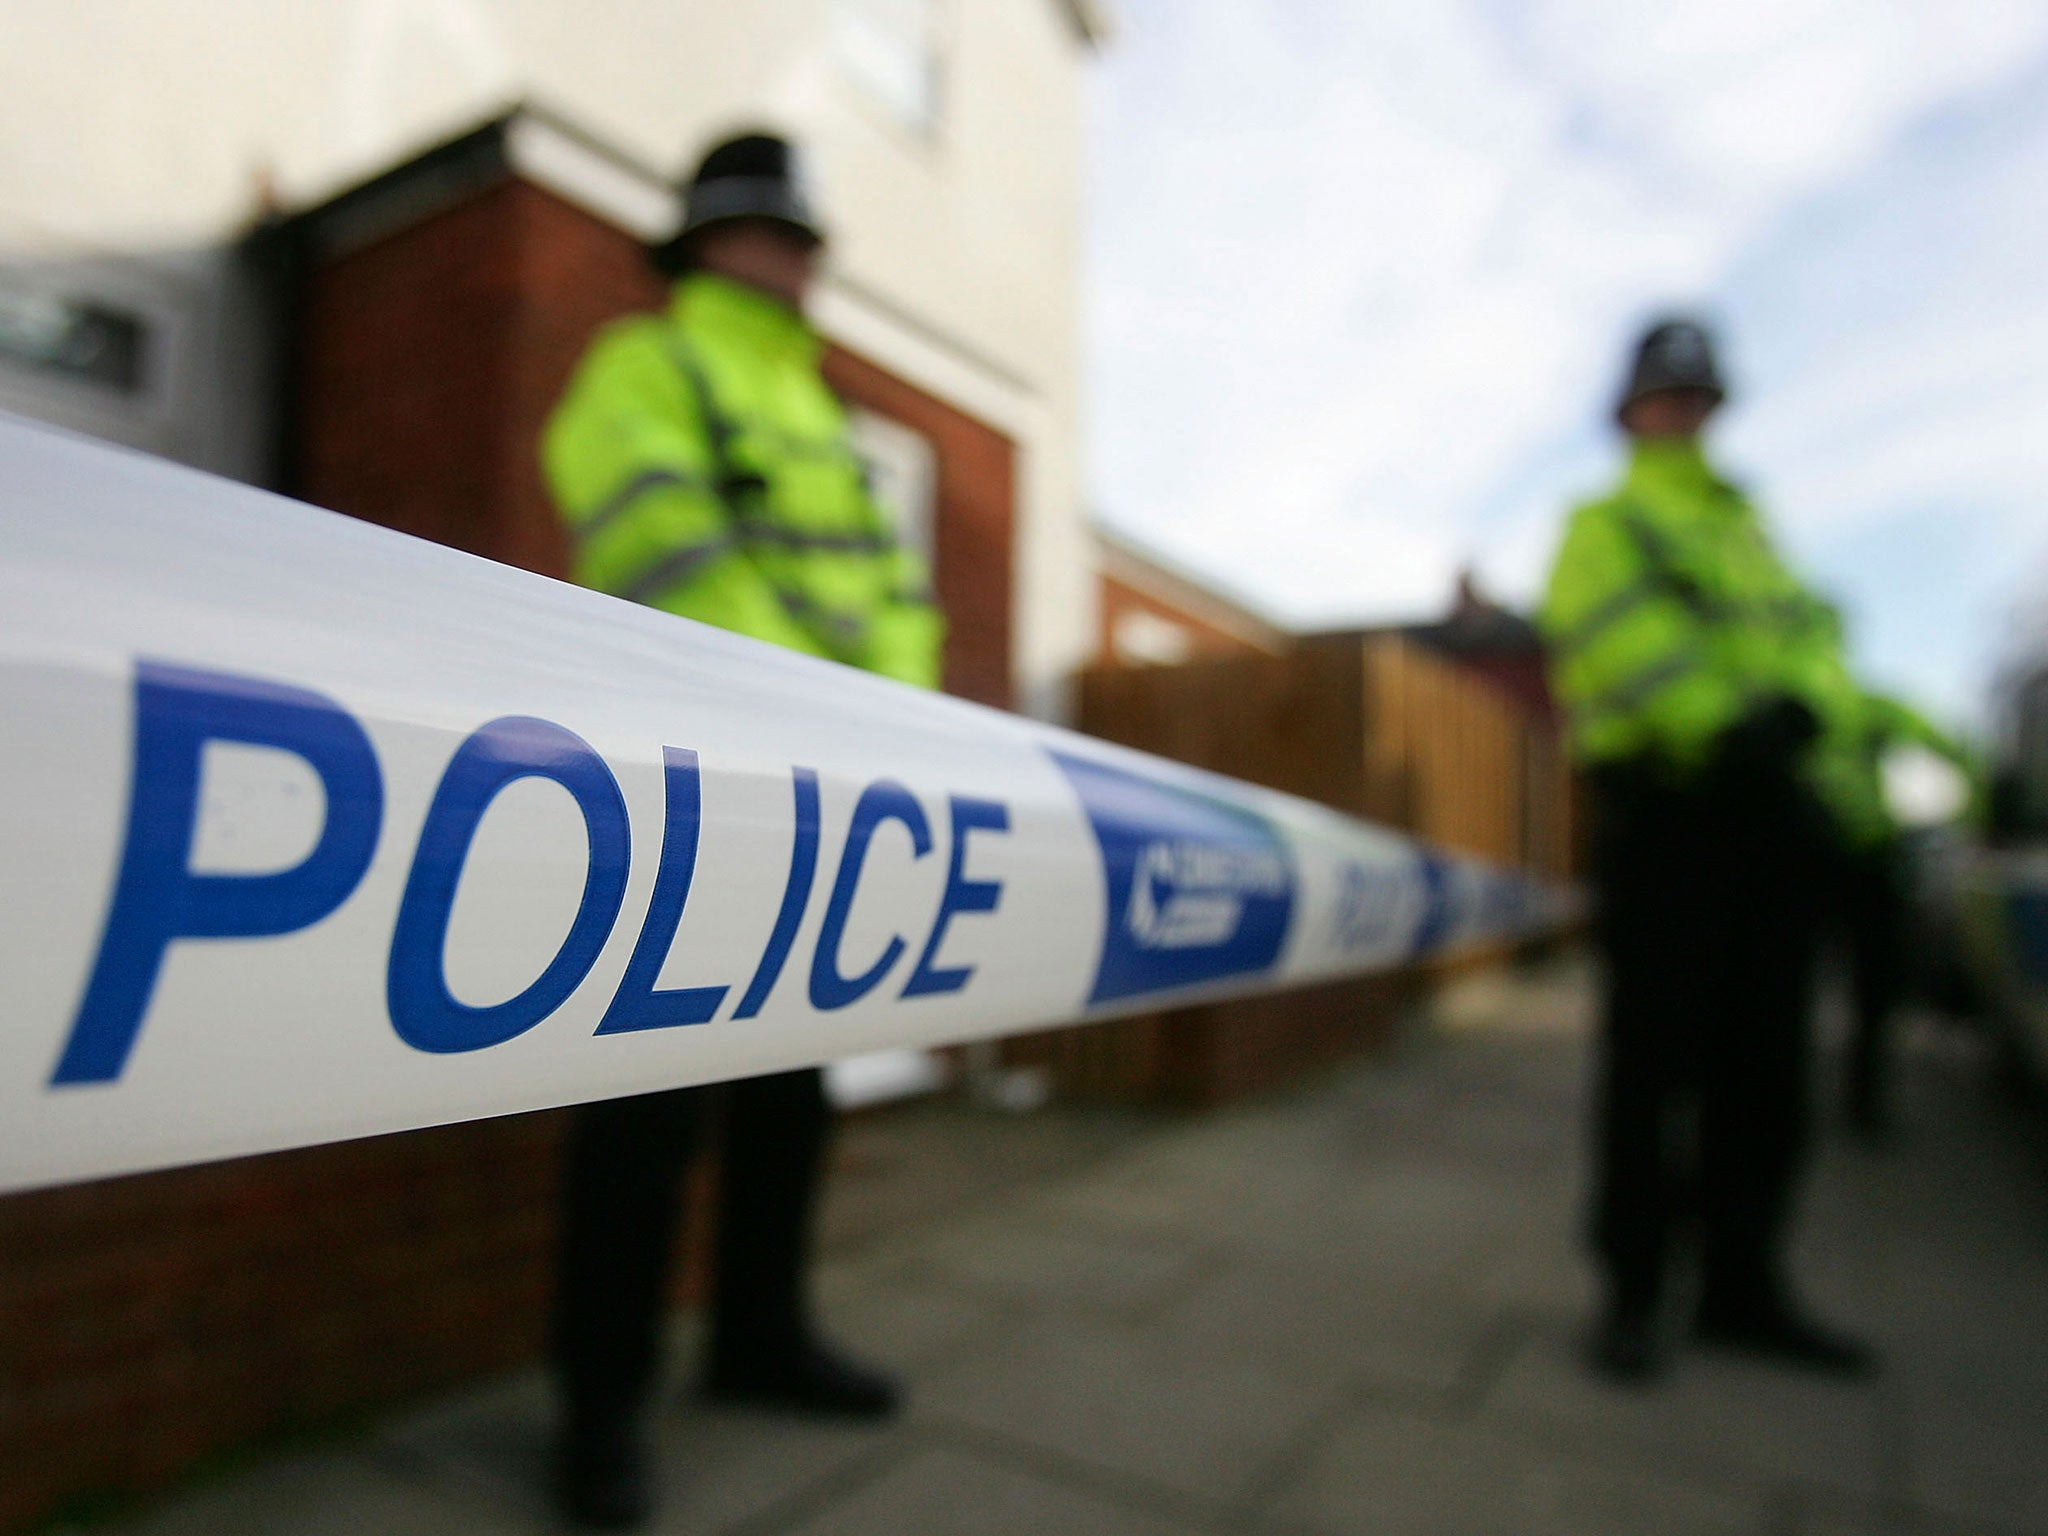 Terror arrests: Police find 'suspicious substance' during search of house linked to five suspected members of UK cell